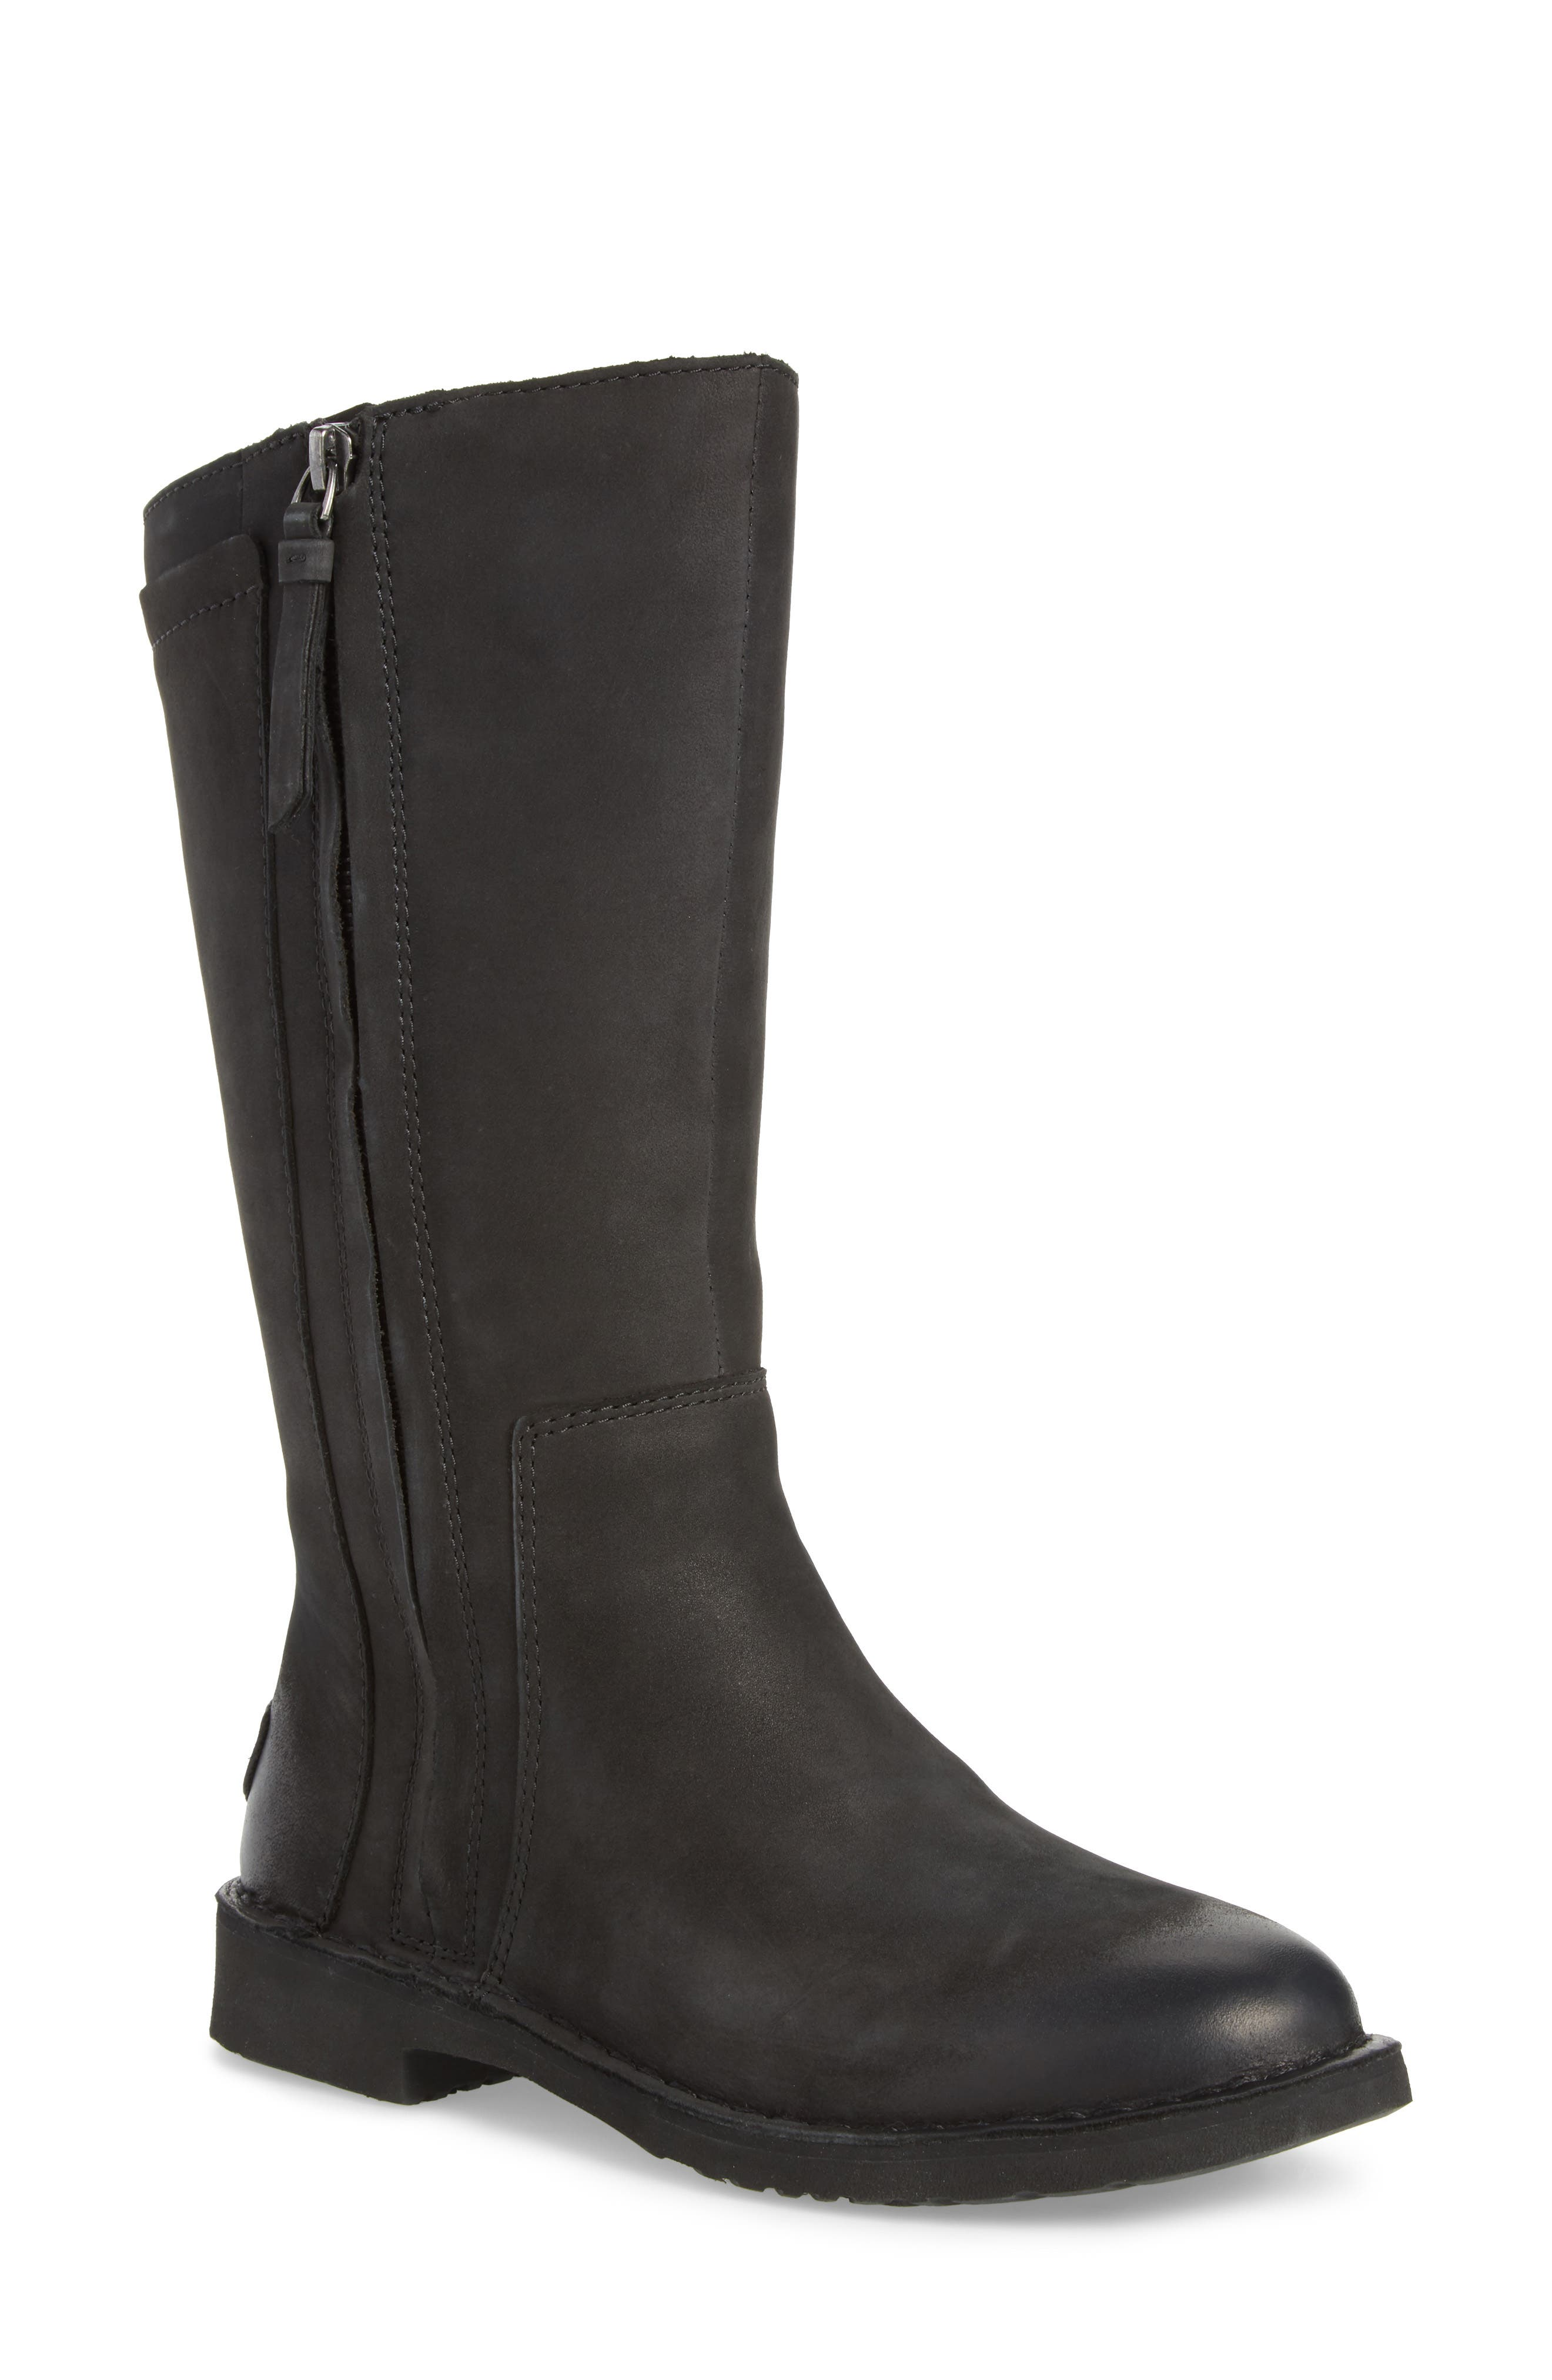 Elly Boot,                             Main thumbnail 1, color,                             Black Nubuck Leather